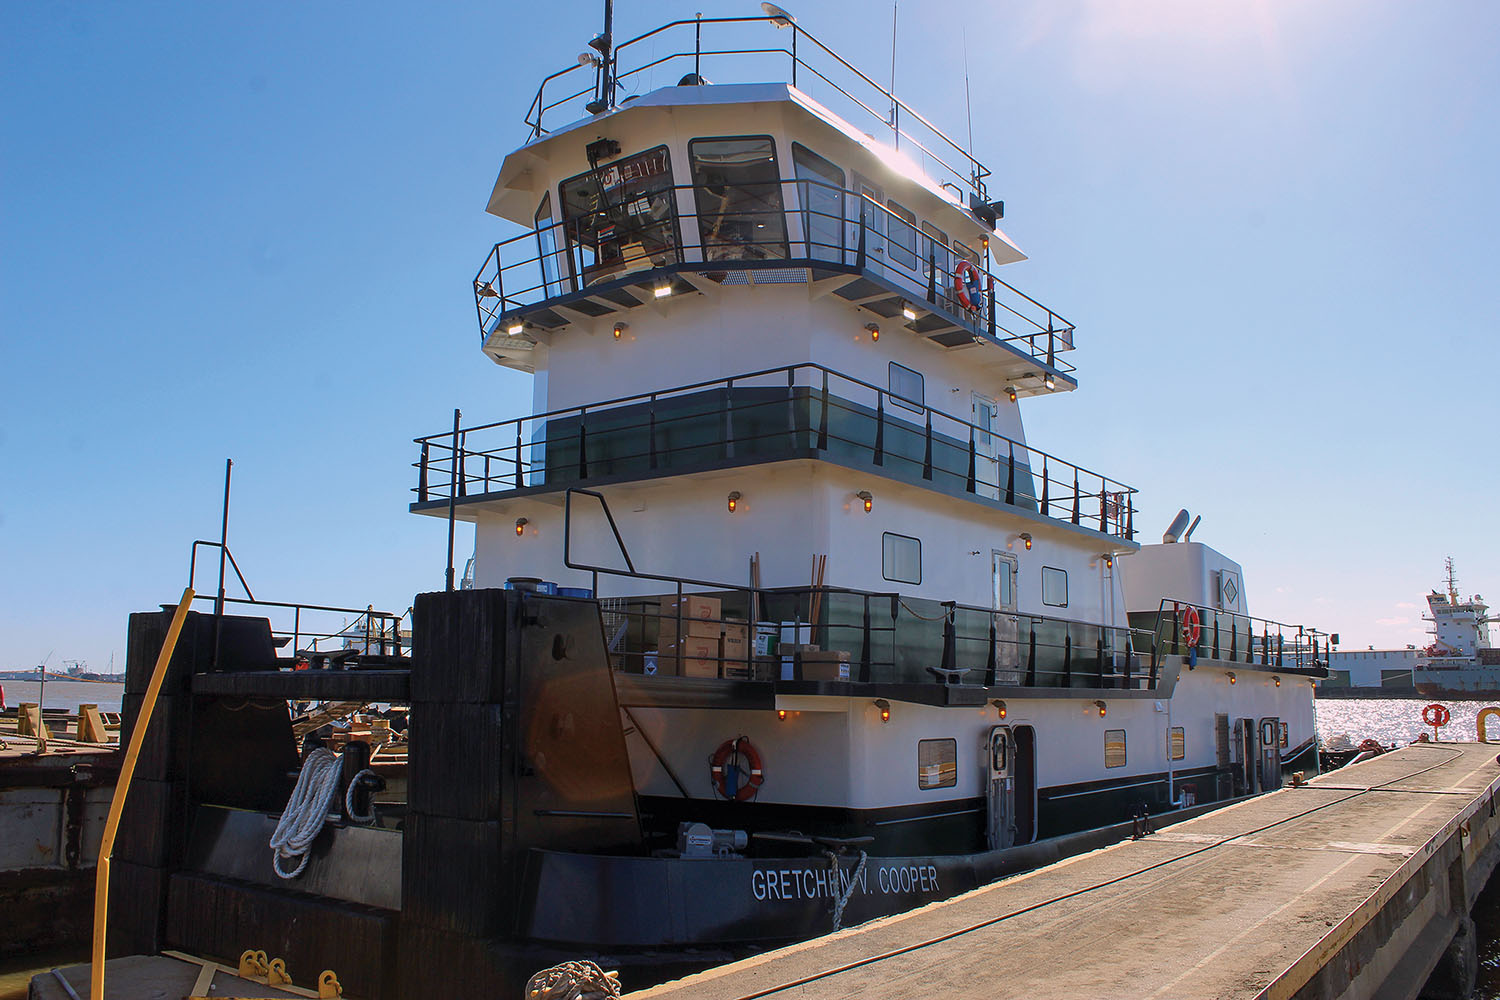 The mv. Gretchen V. Cooper is powered by two Tier 4 Caterpillar C3512E main engines.